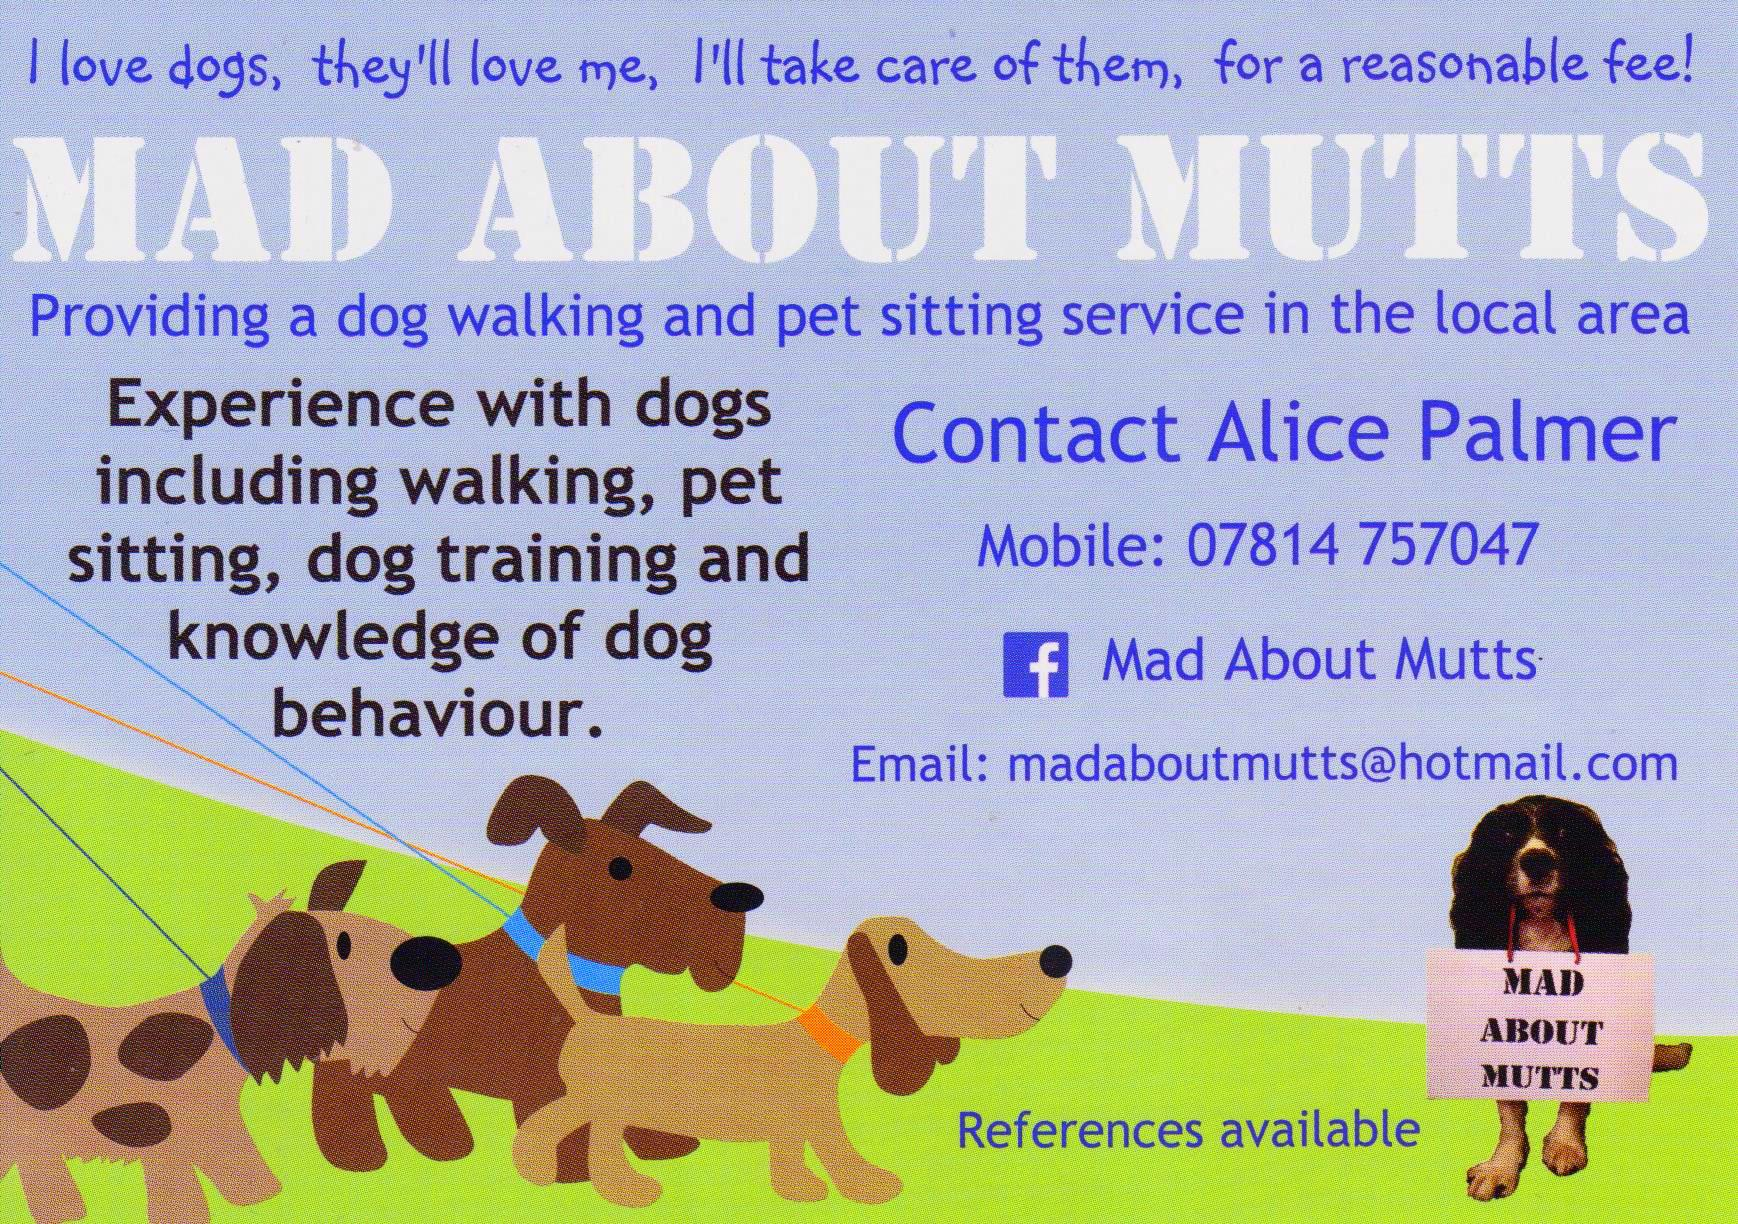 Alice Palmer Of Pymoor Provides A Dog Walking And Pet Sitting Service In The